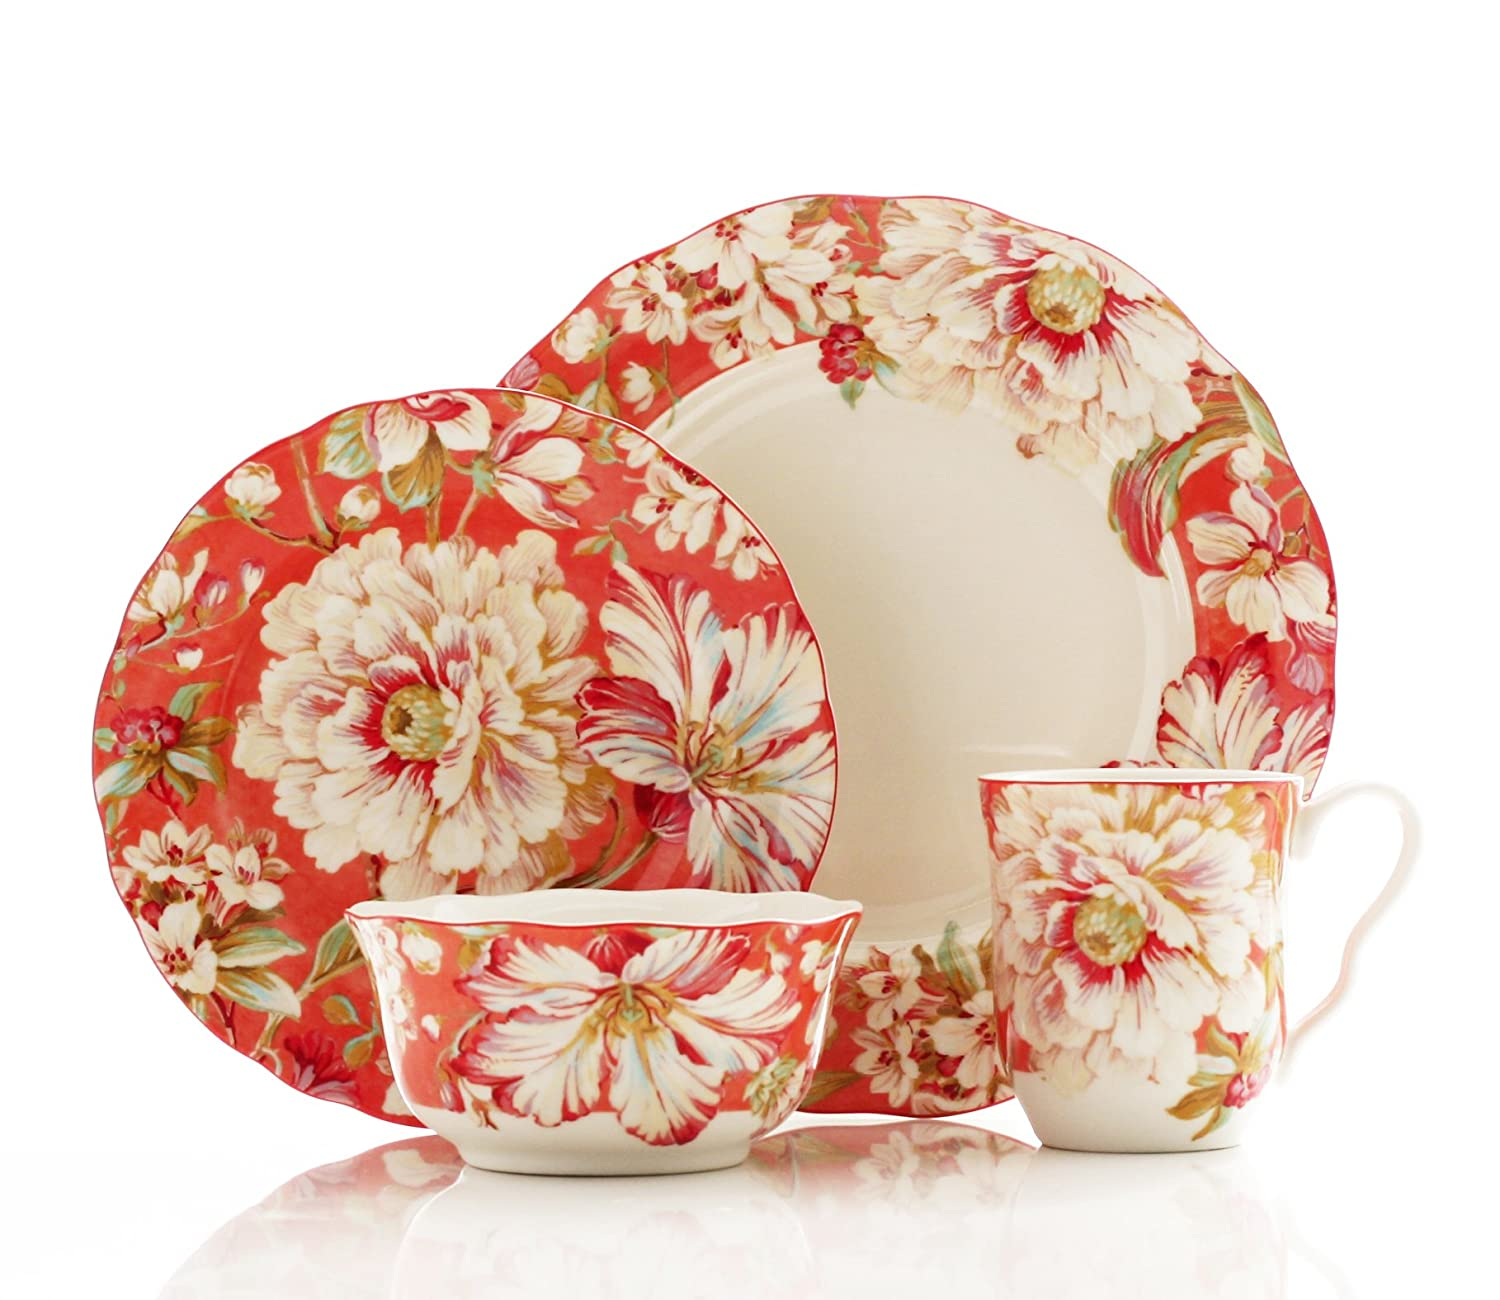 222 Fifth 16-Piece Dinnerware Set, Marley Coral, Service for 4